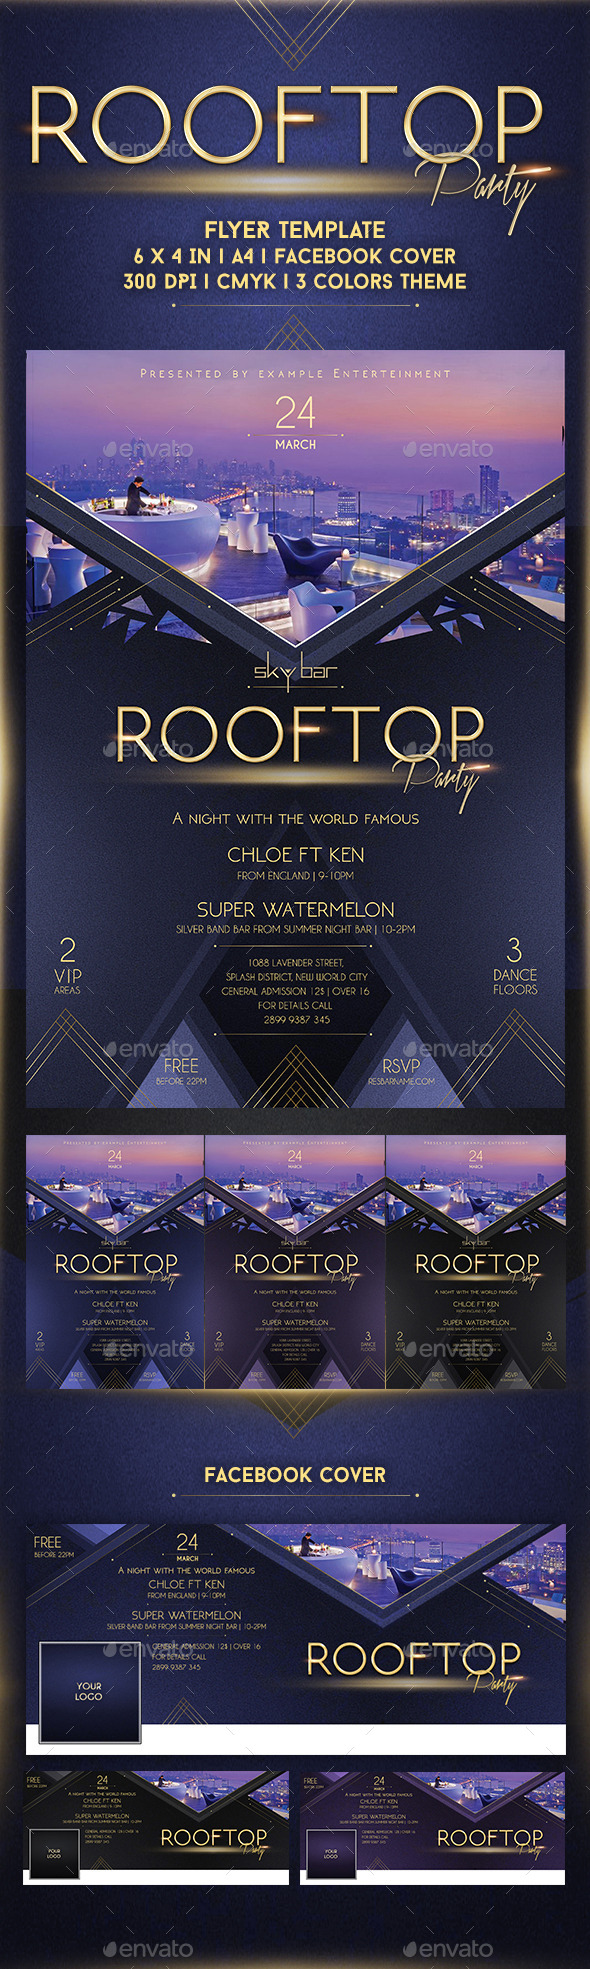 GraphicRiver Rooftop Party Flyer Template 10747669